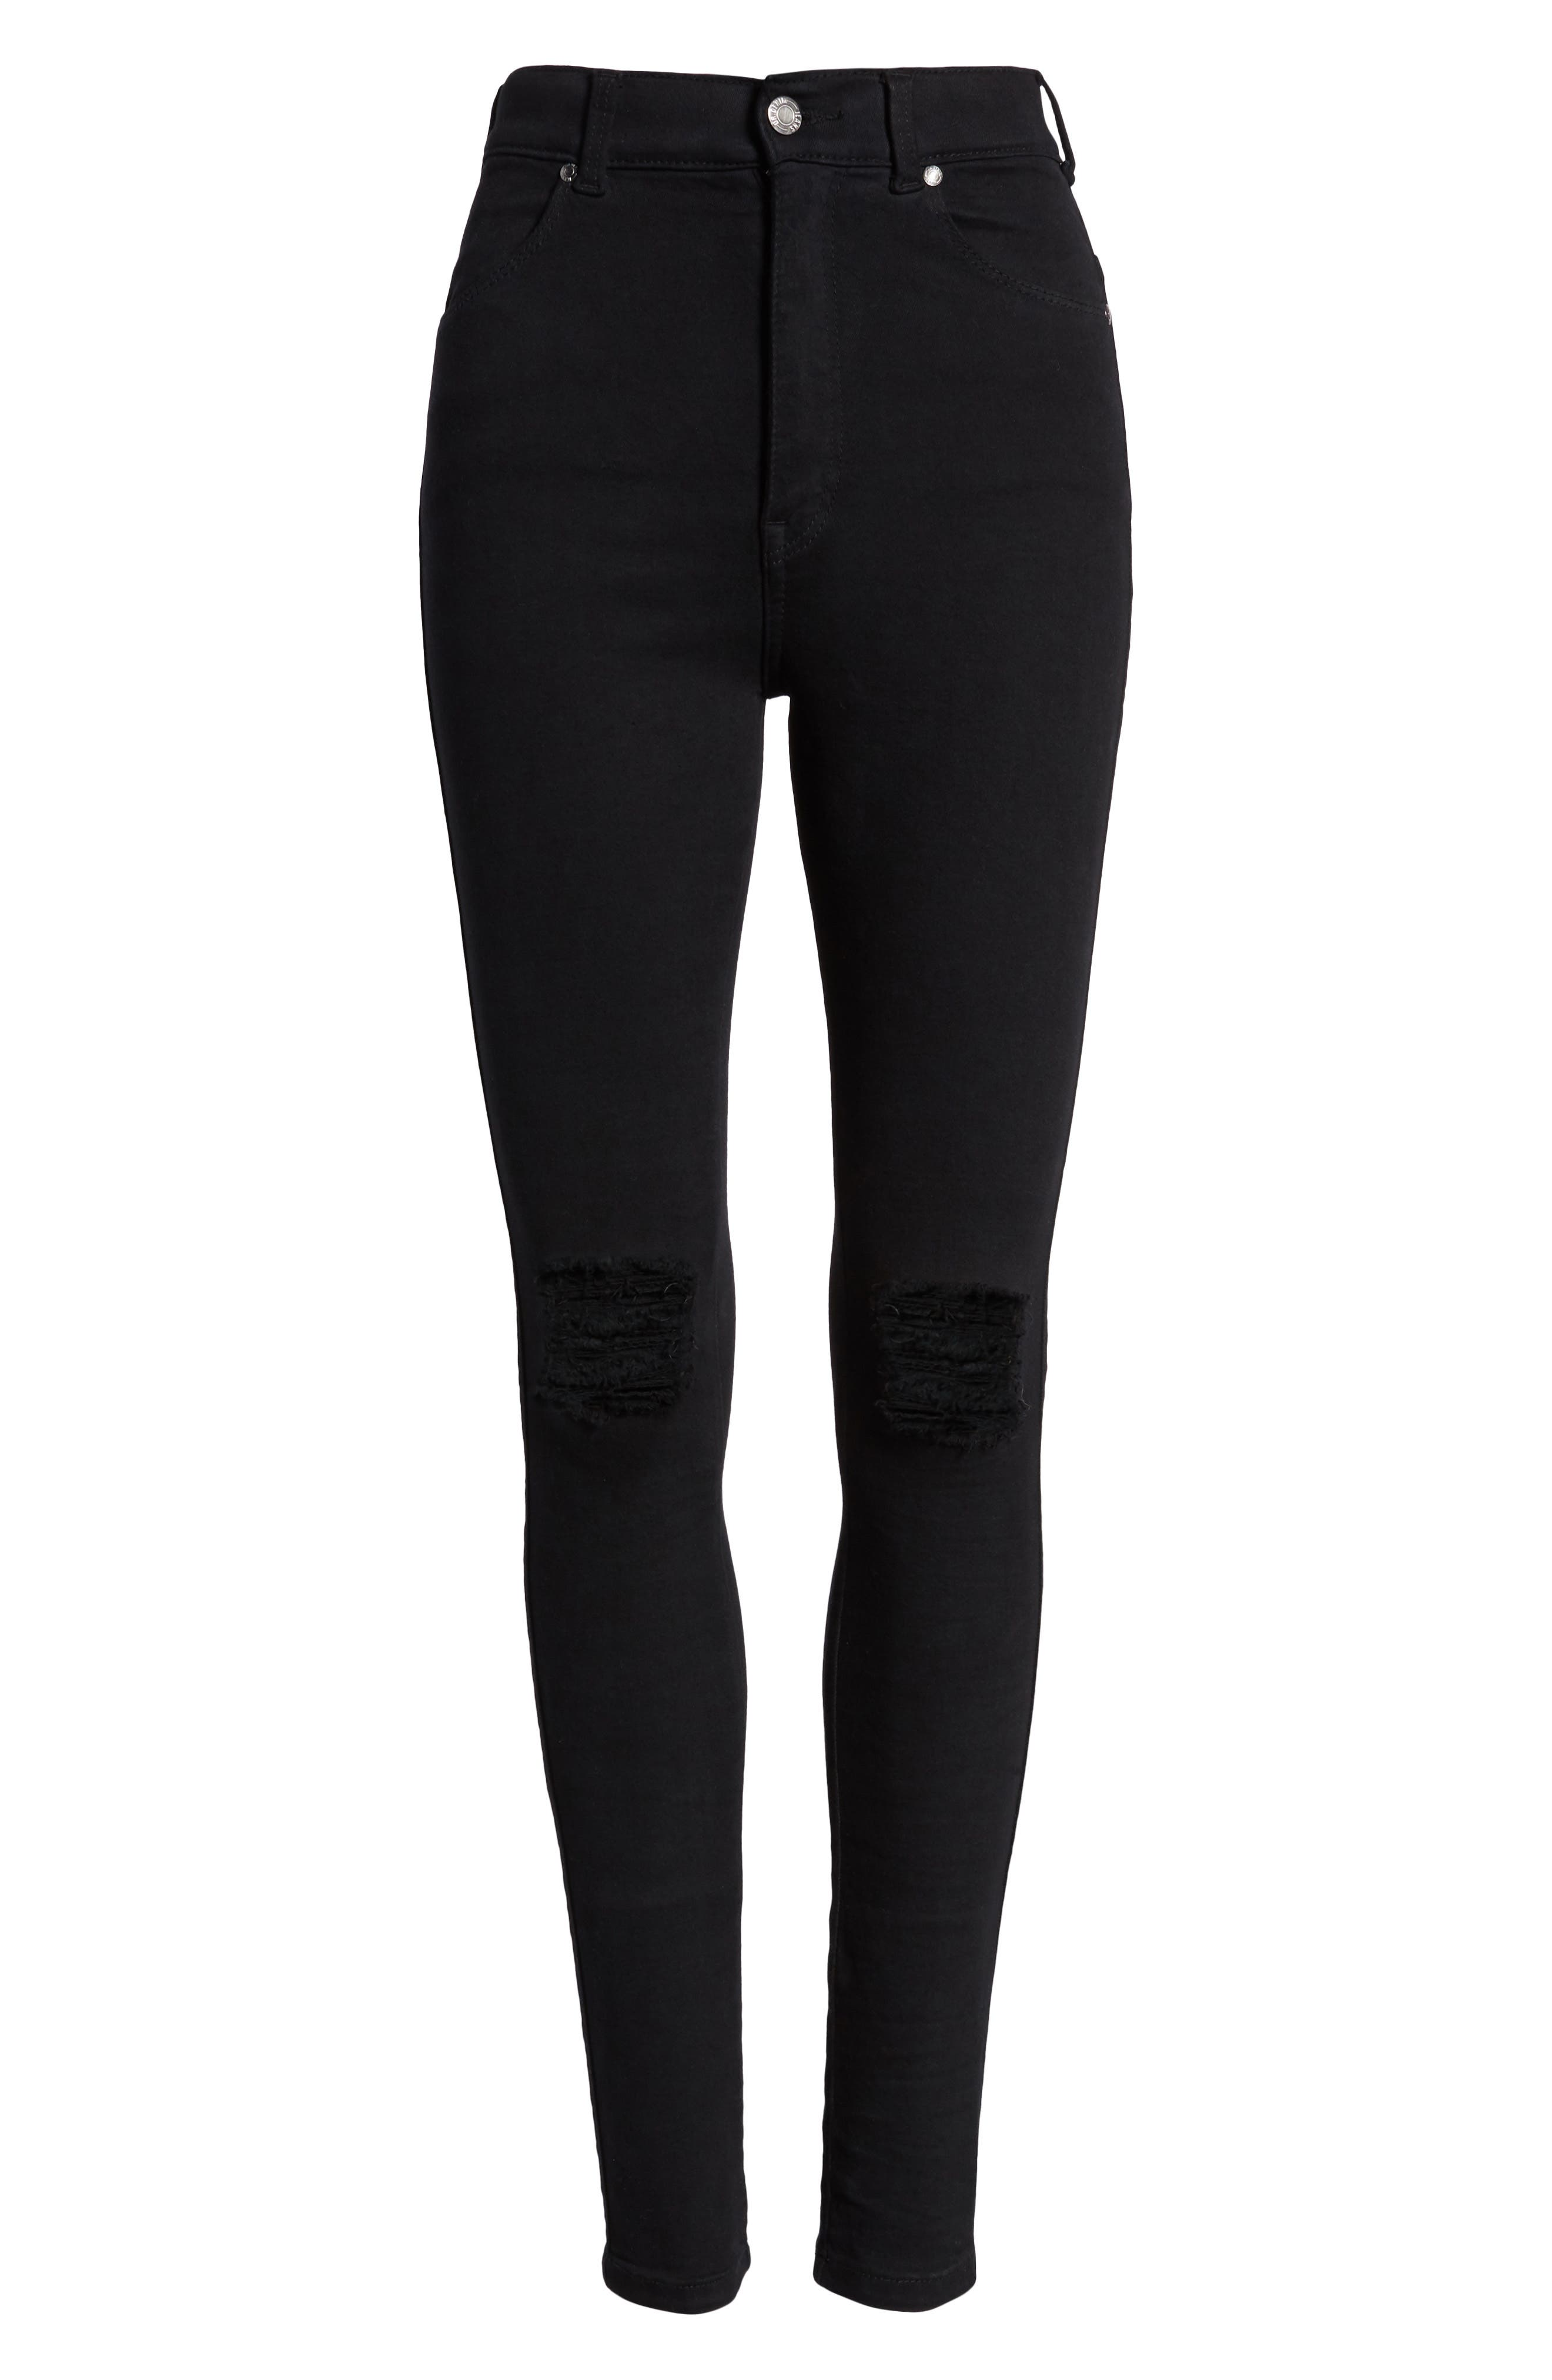 Moxy Ripped Knee Skinny Jeans,                             Alternate thumbnail 7, color,                             003